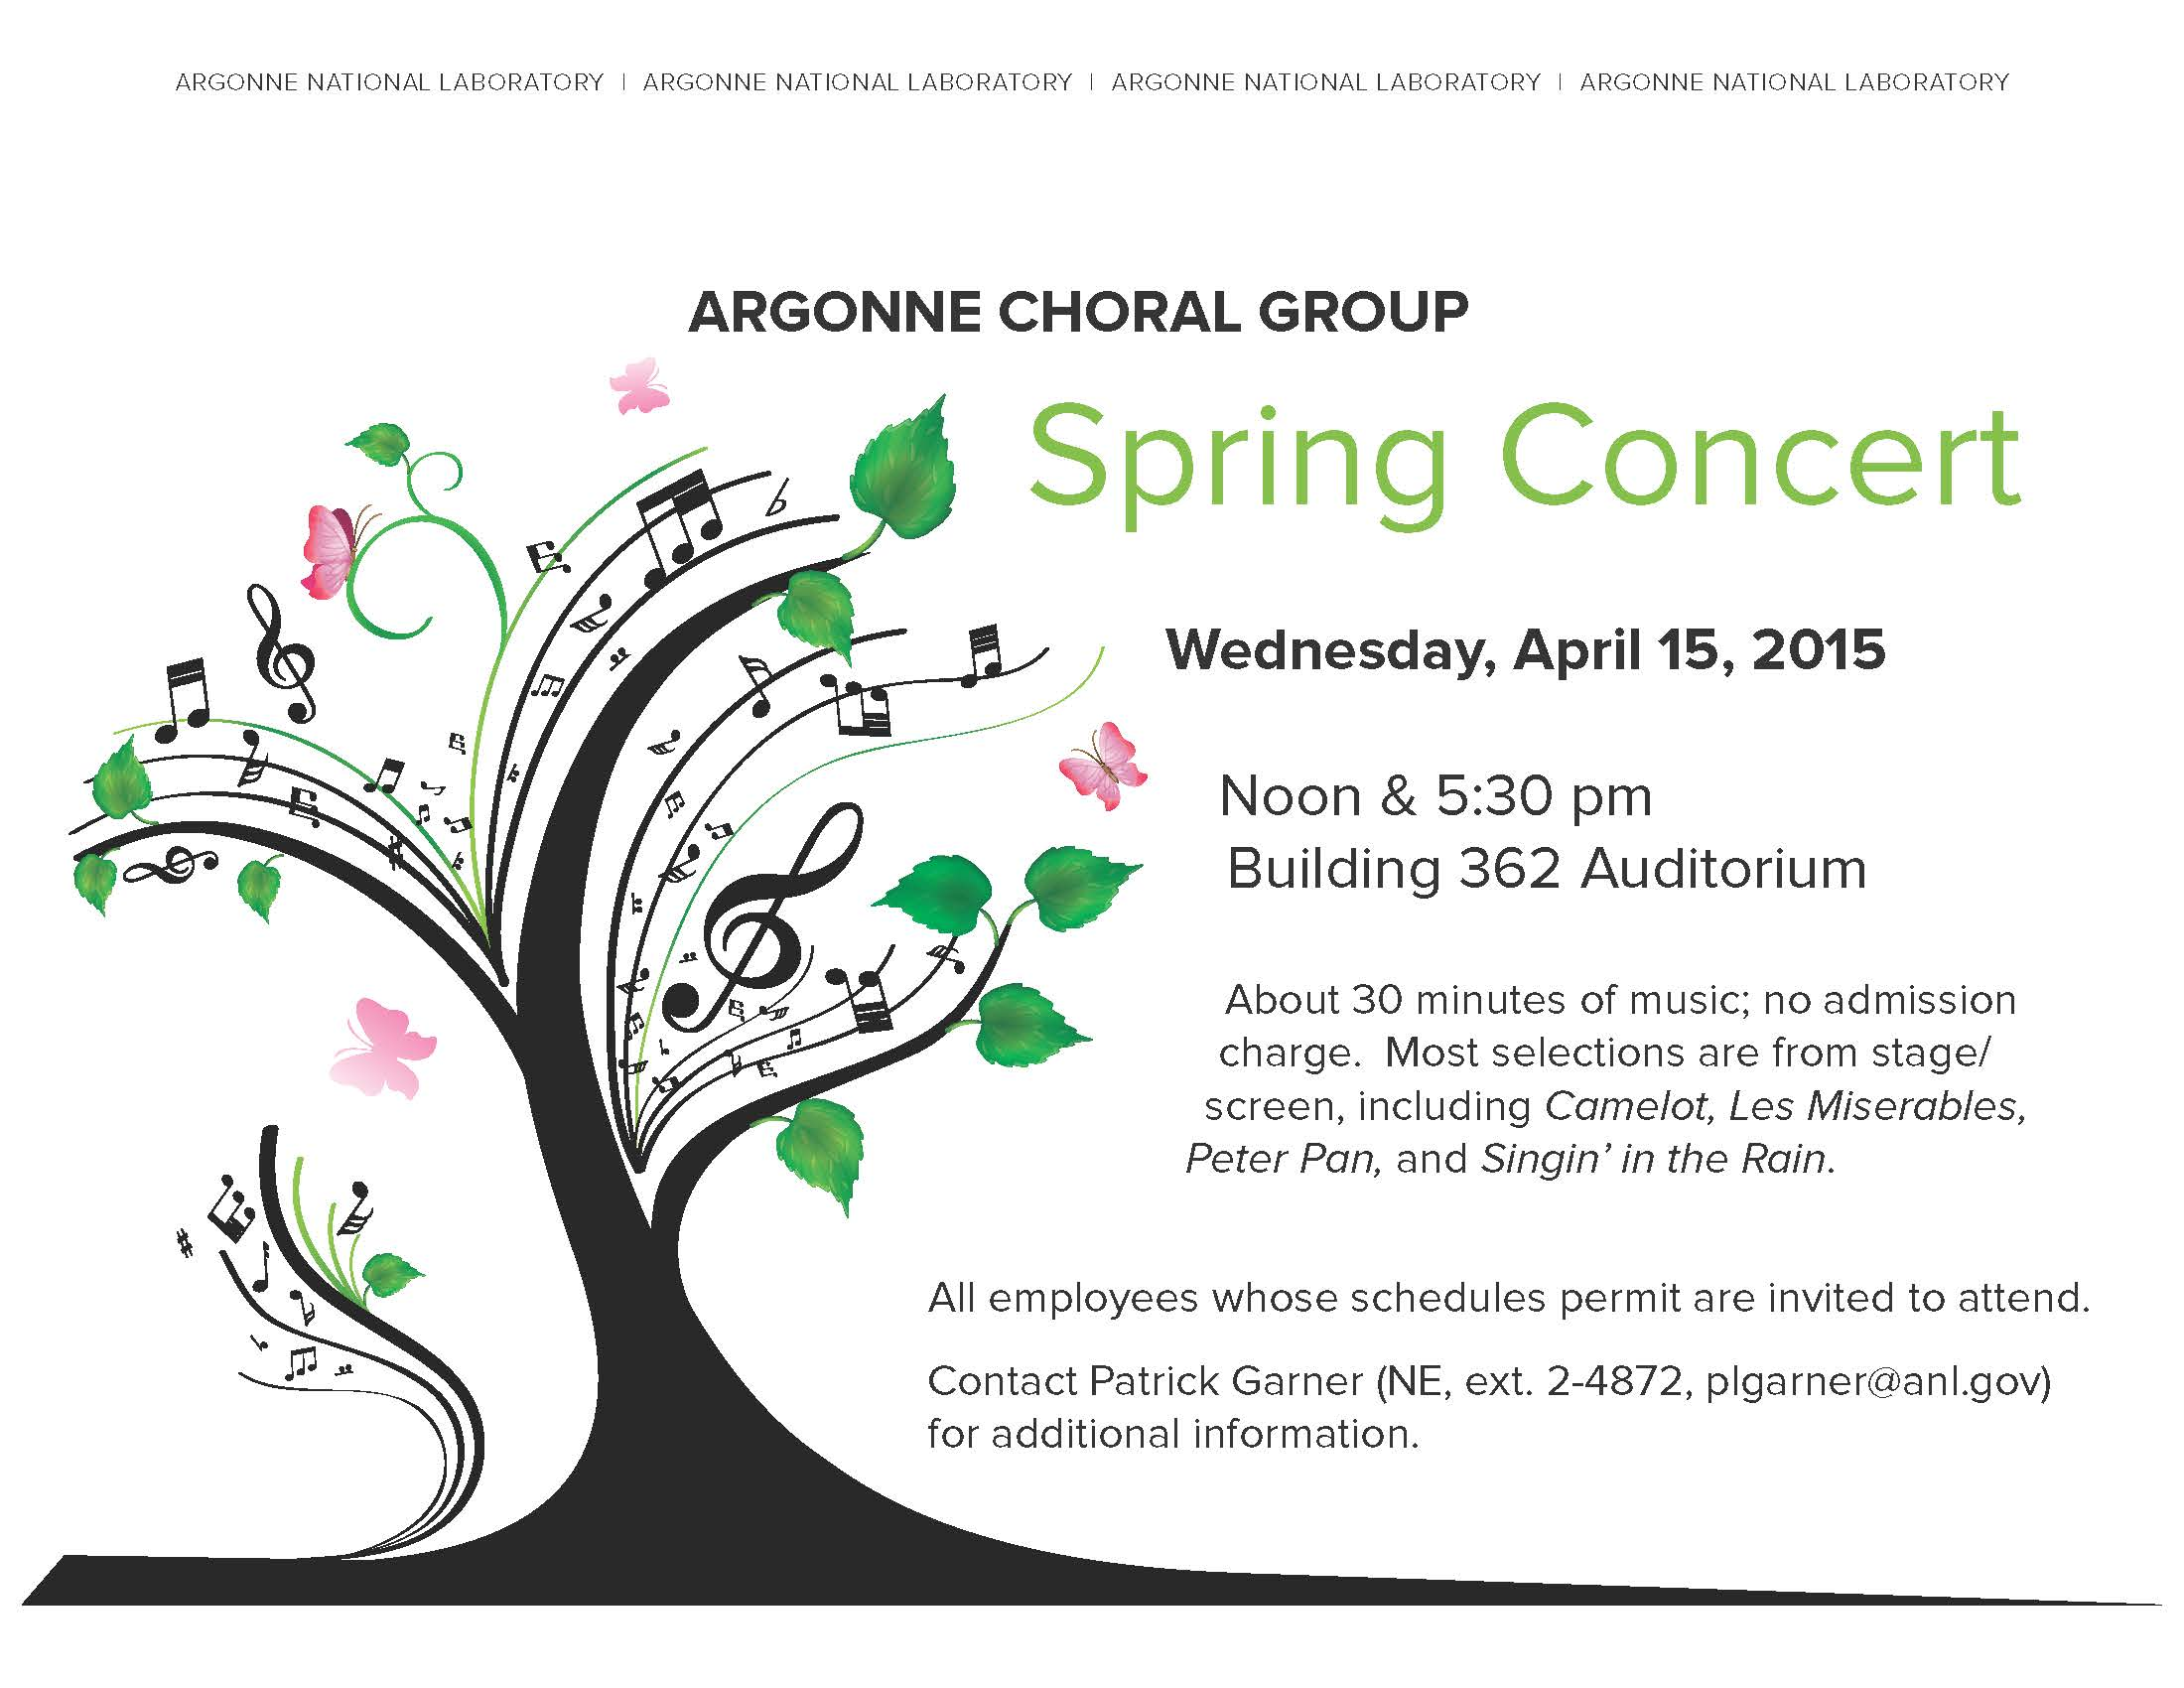 You Are Invited To The Argonne Choral Group S 2015 Spring